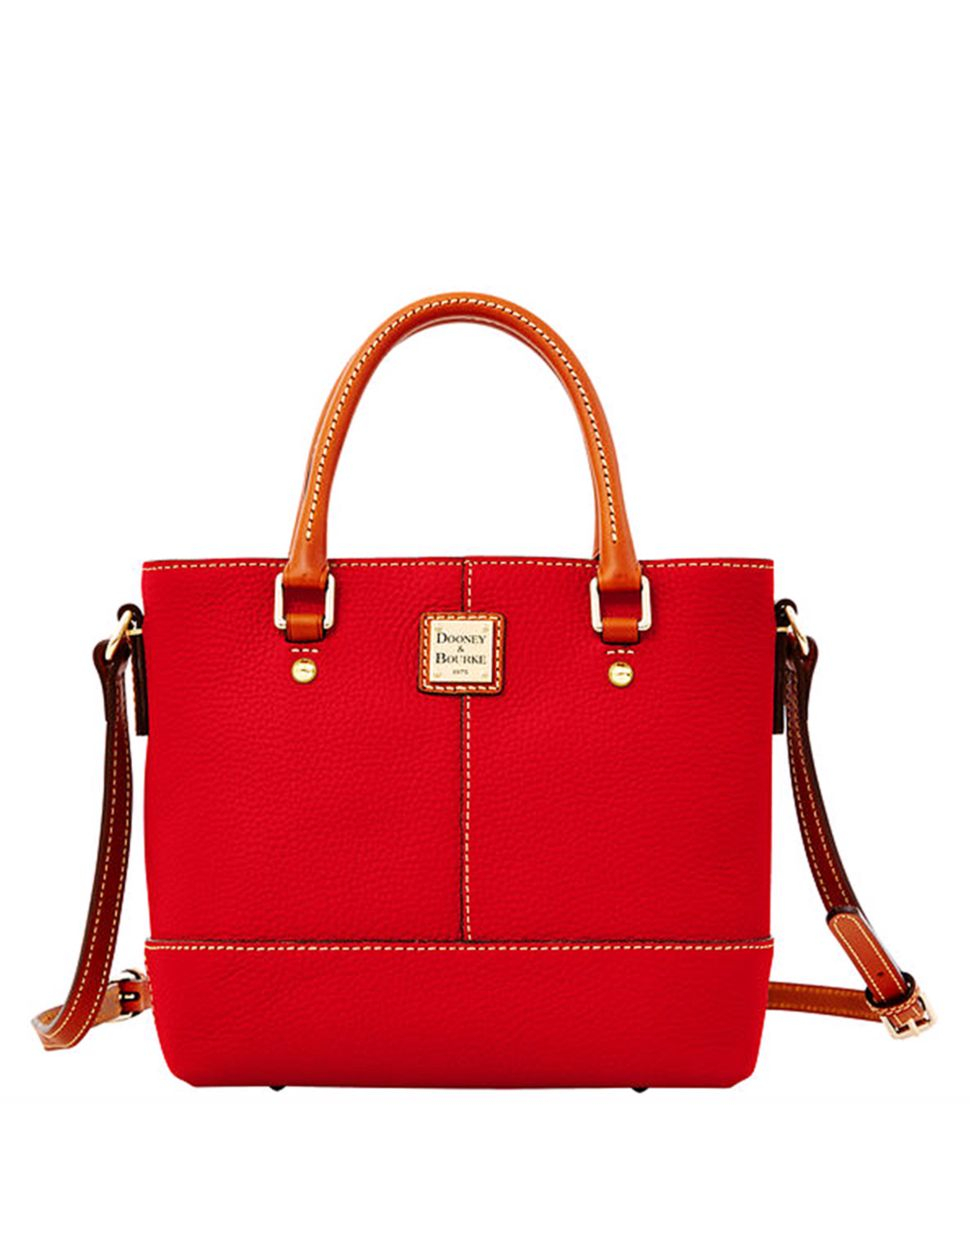 dooney bourke mini chelsea pebbled leather tote bag in